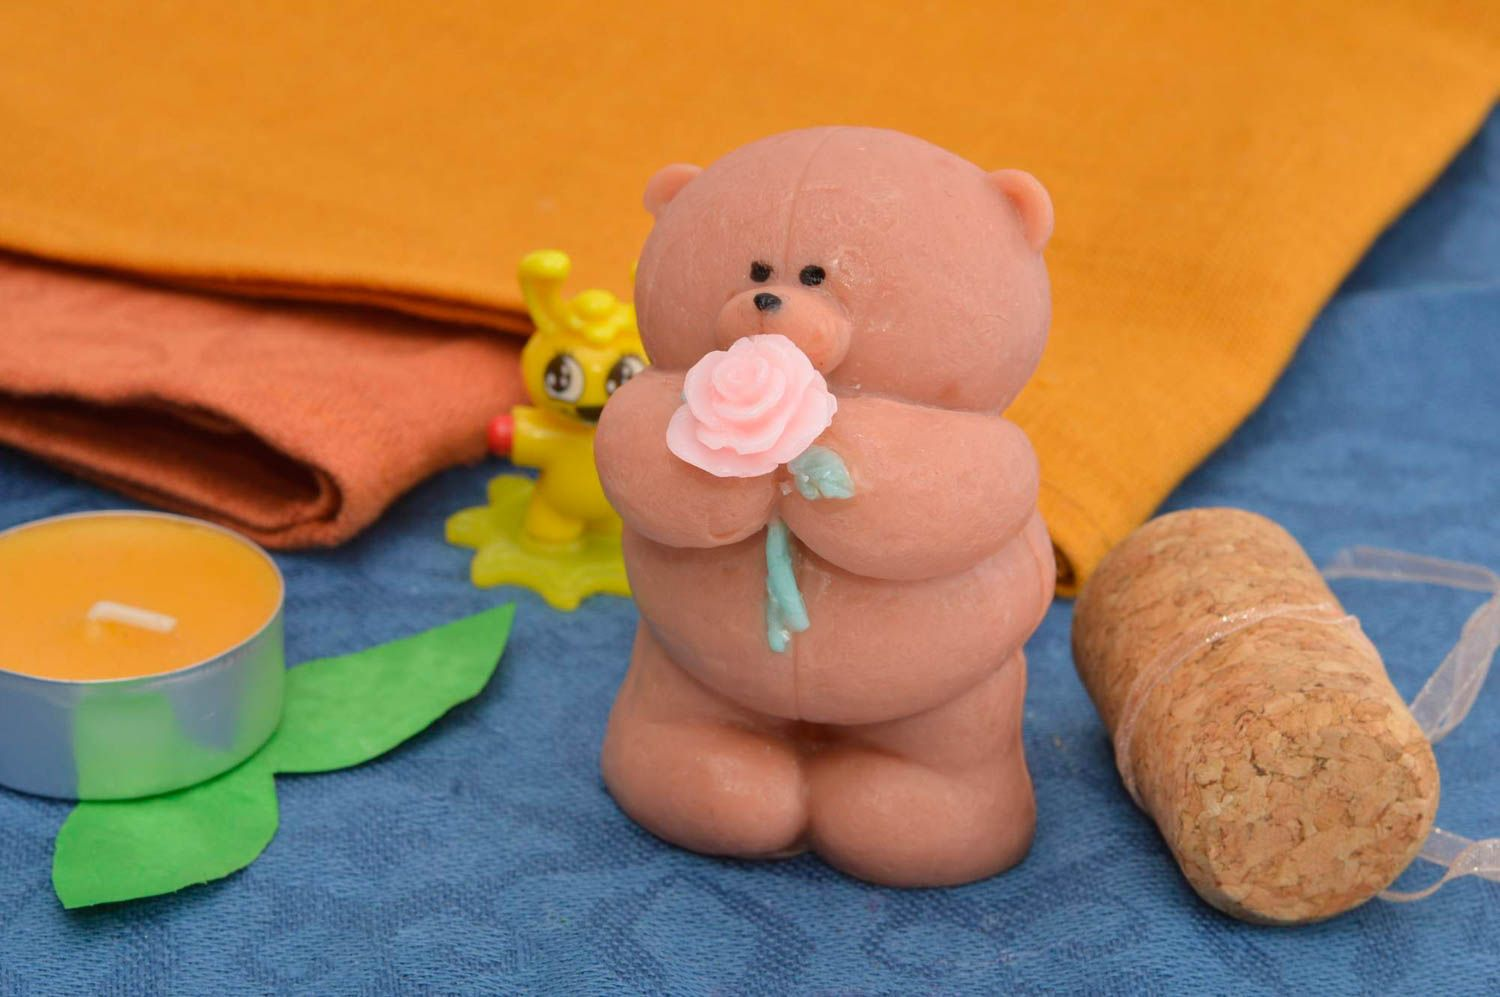 Handmade soap natural soap teddy-bear with rose natural cosmetic aroma soap photo 1